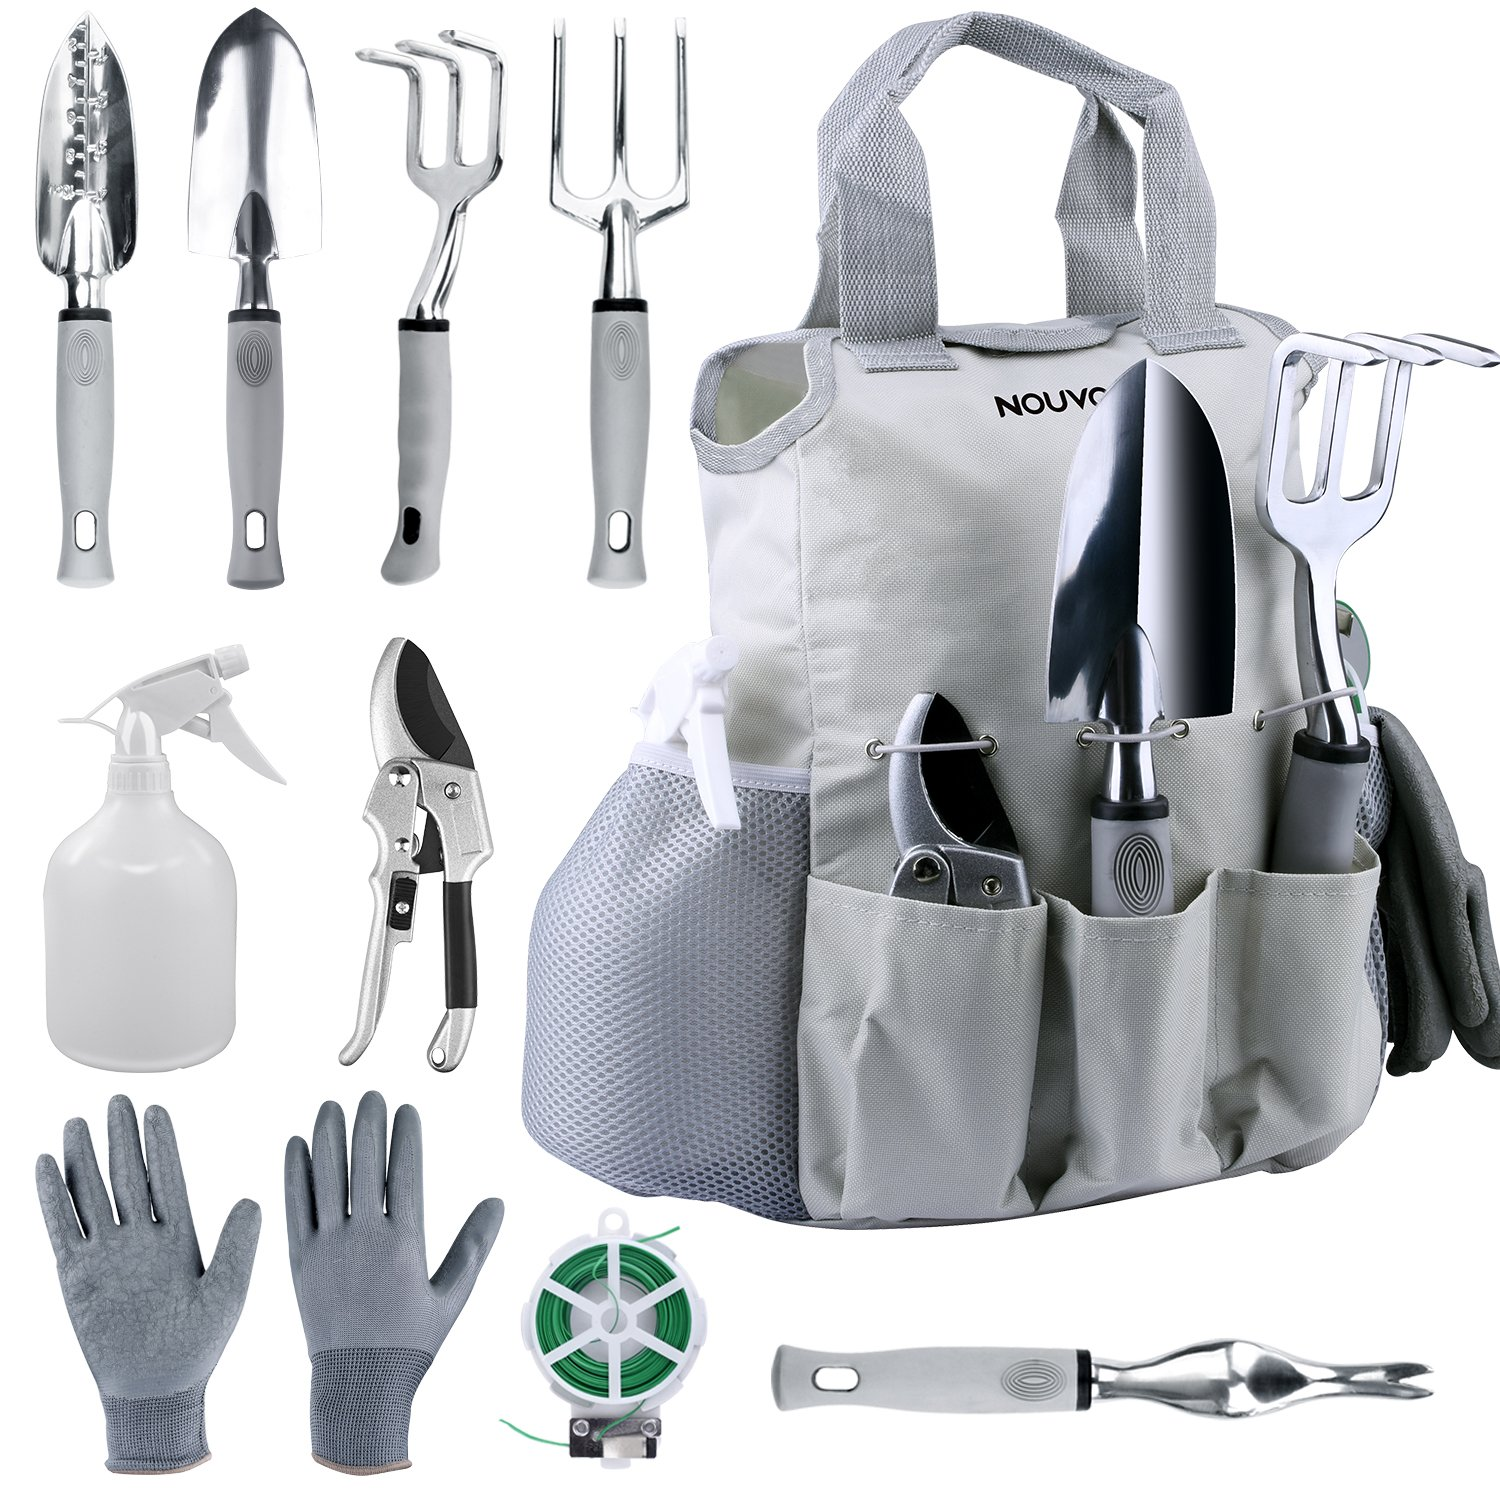 NOUVCOO NC24 Garden Tool Set with Plant Ties,10 Pieces Stainless Steel Hand, Grey